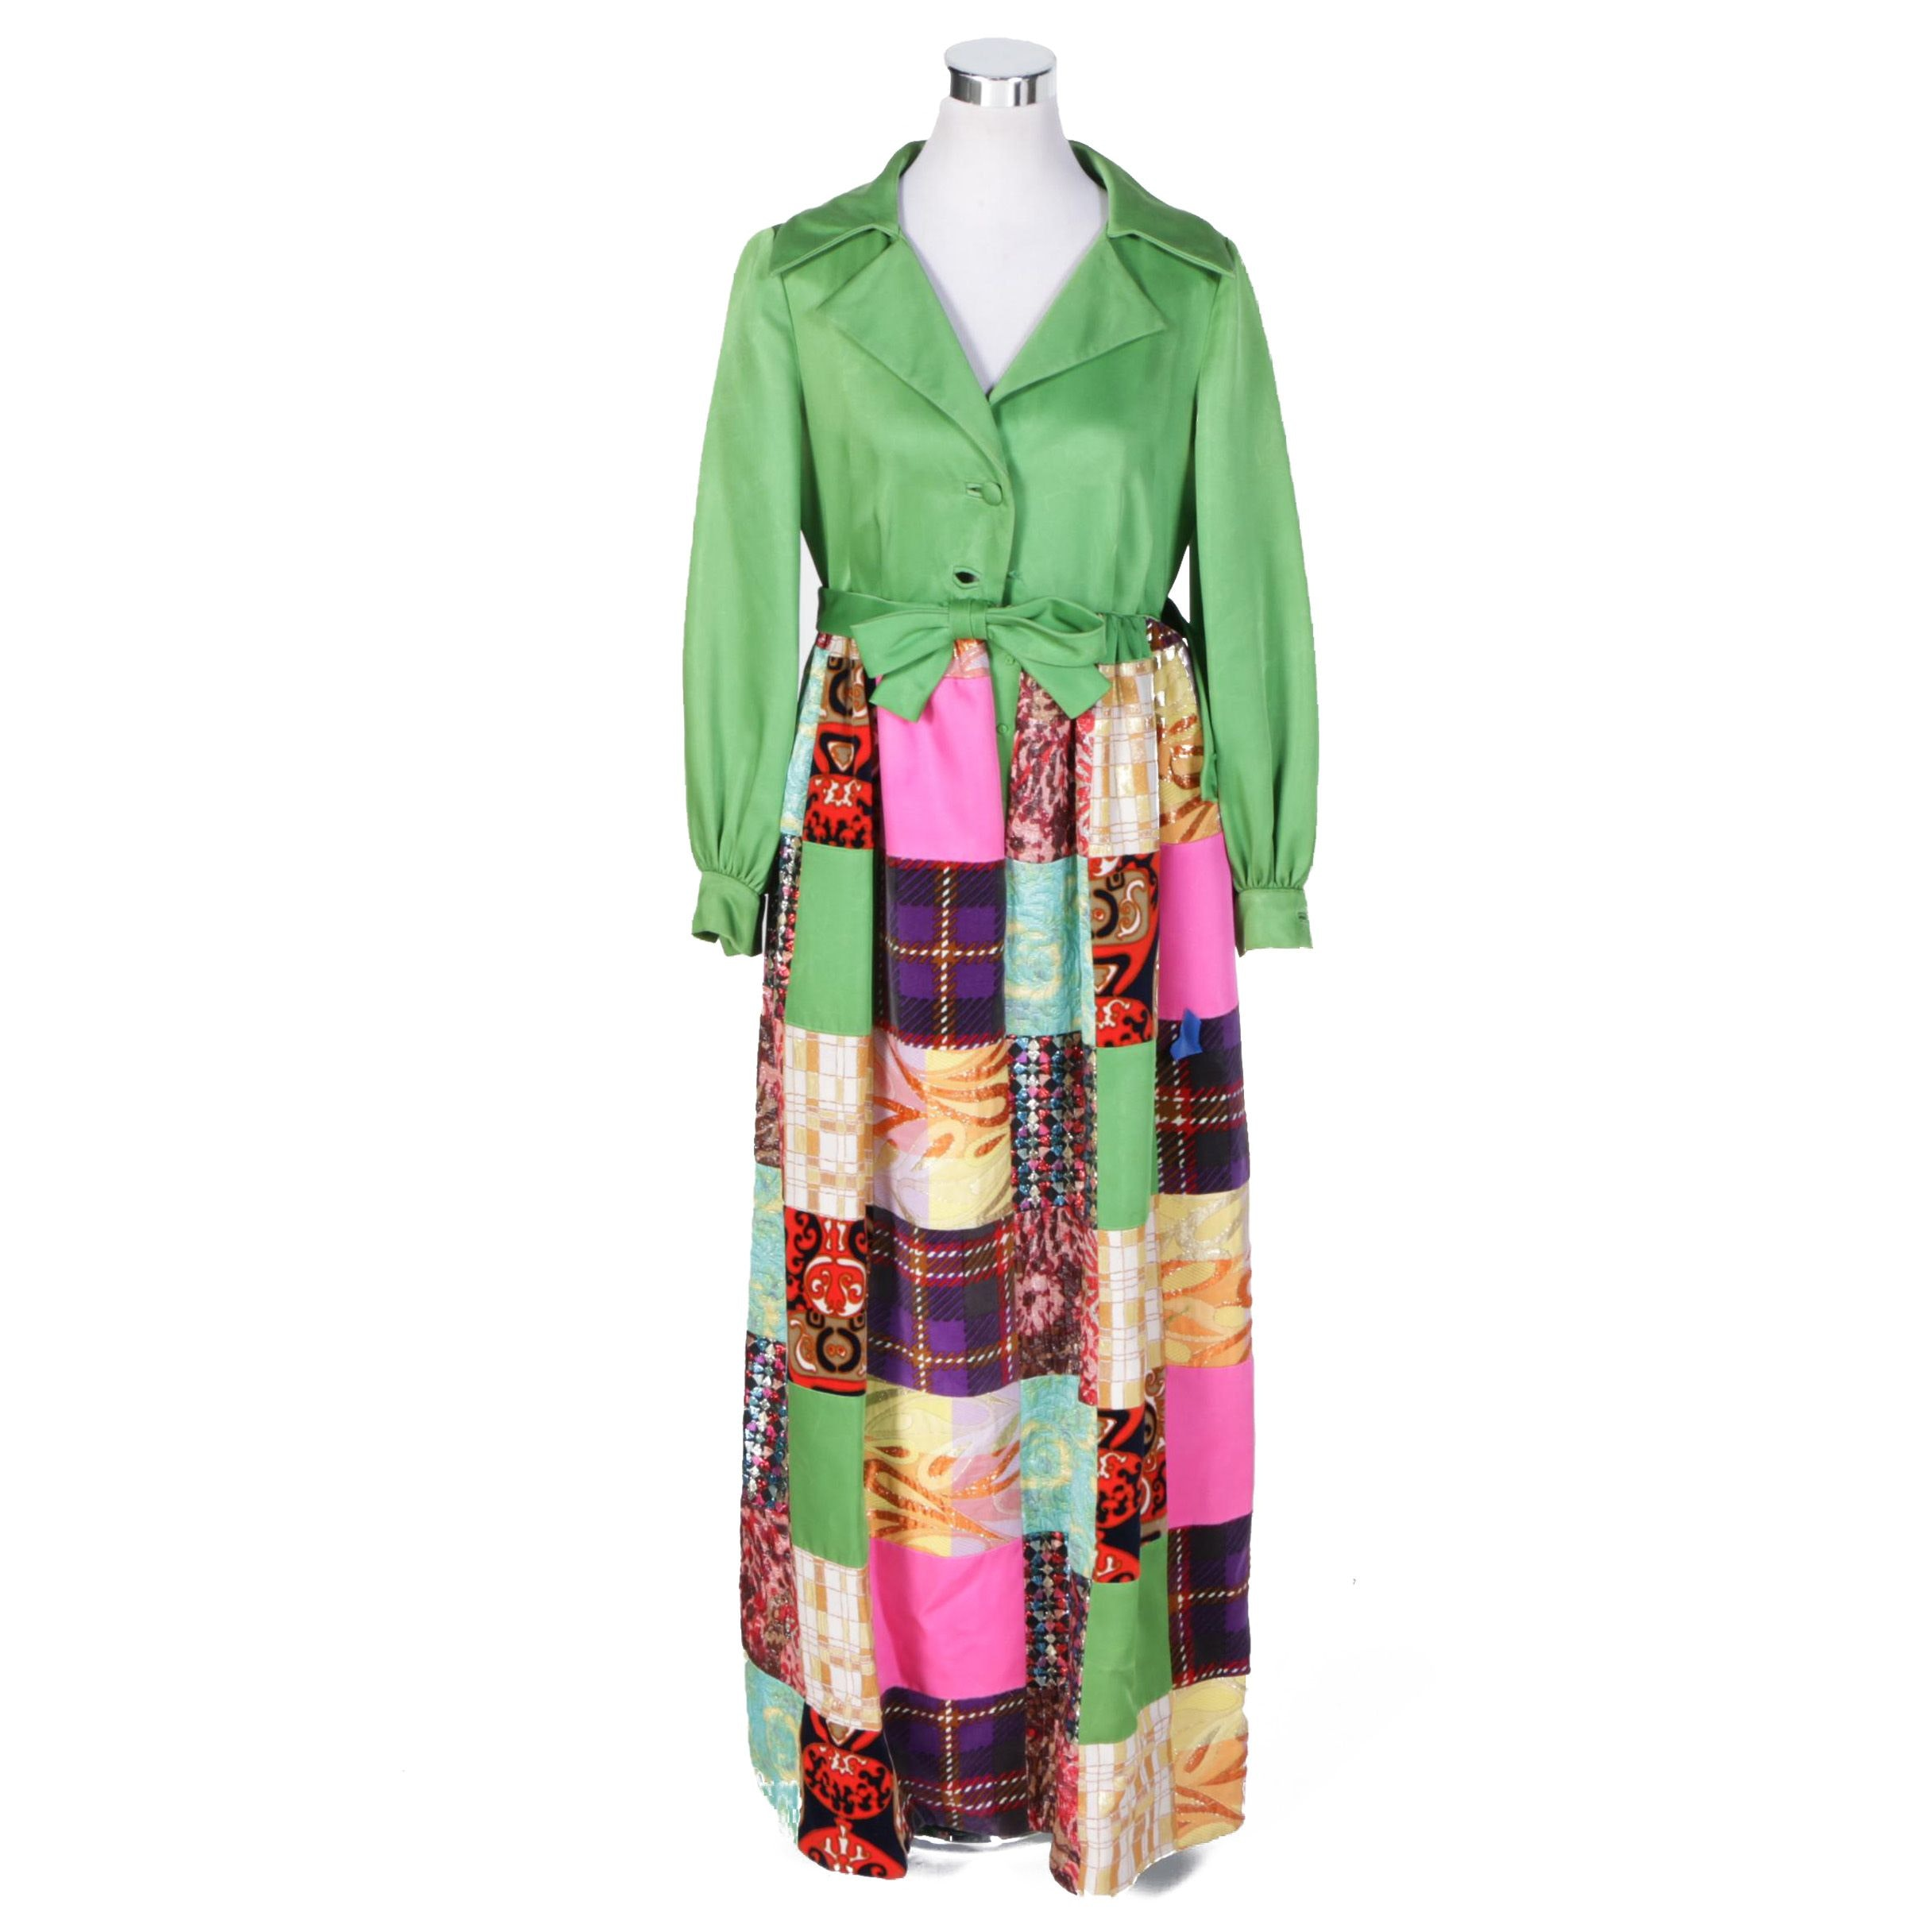 Circa 1970s Elinor Simmons for Malcolm Starr Patchwork Maxi Dress